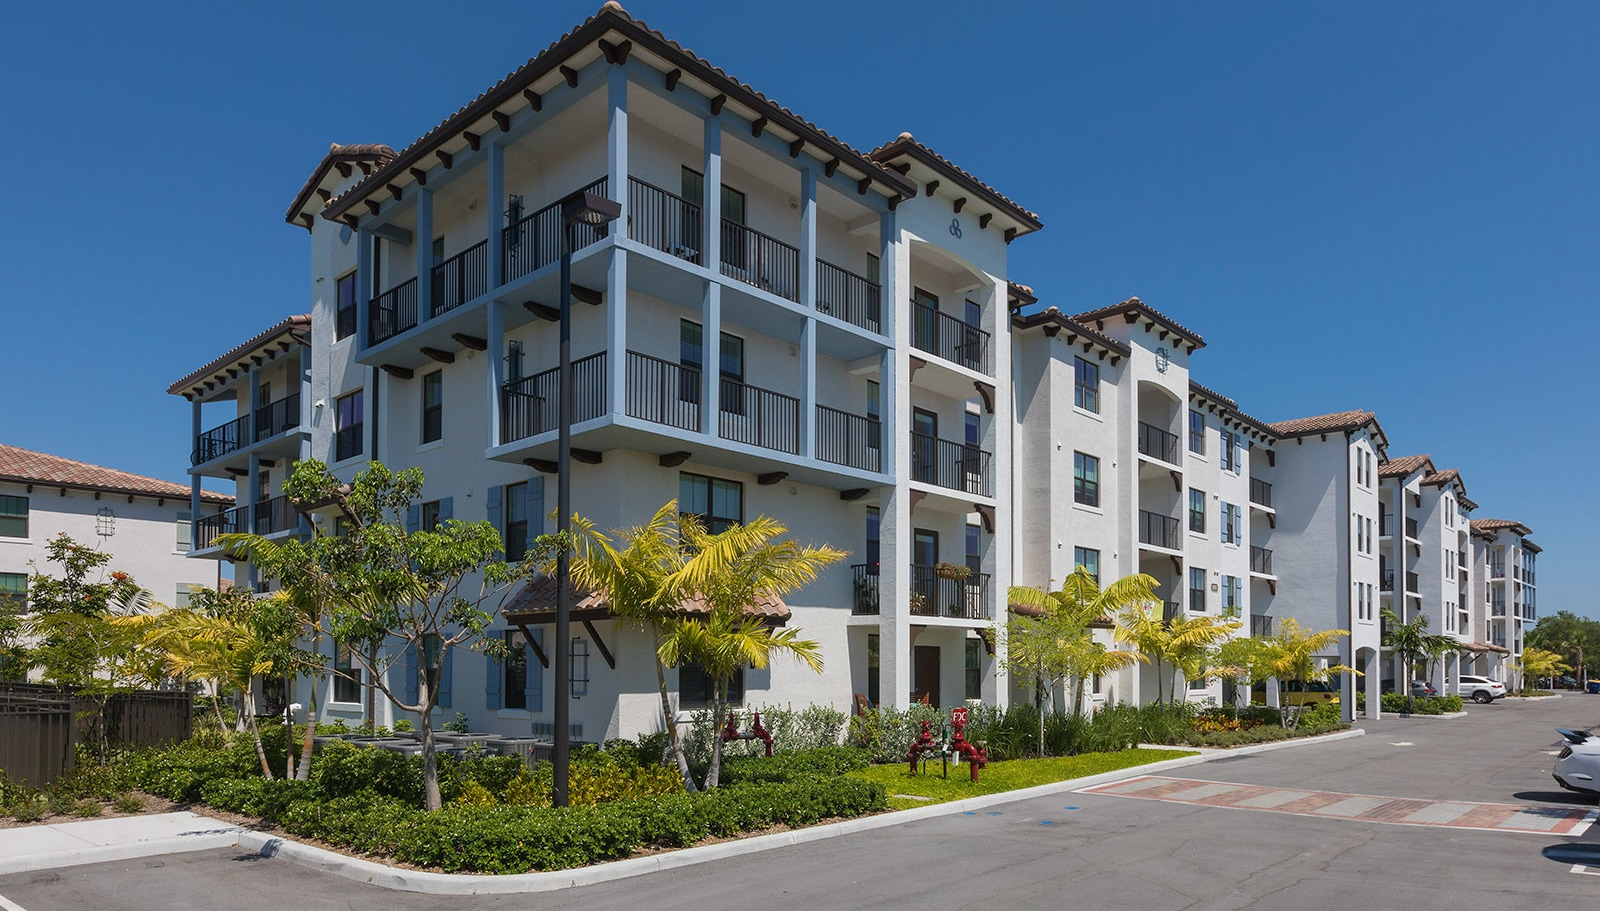 20 Best Apartments In Delray Beach, FL (with pictures)!